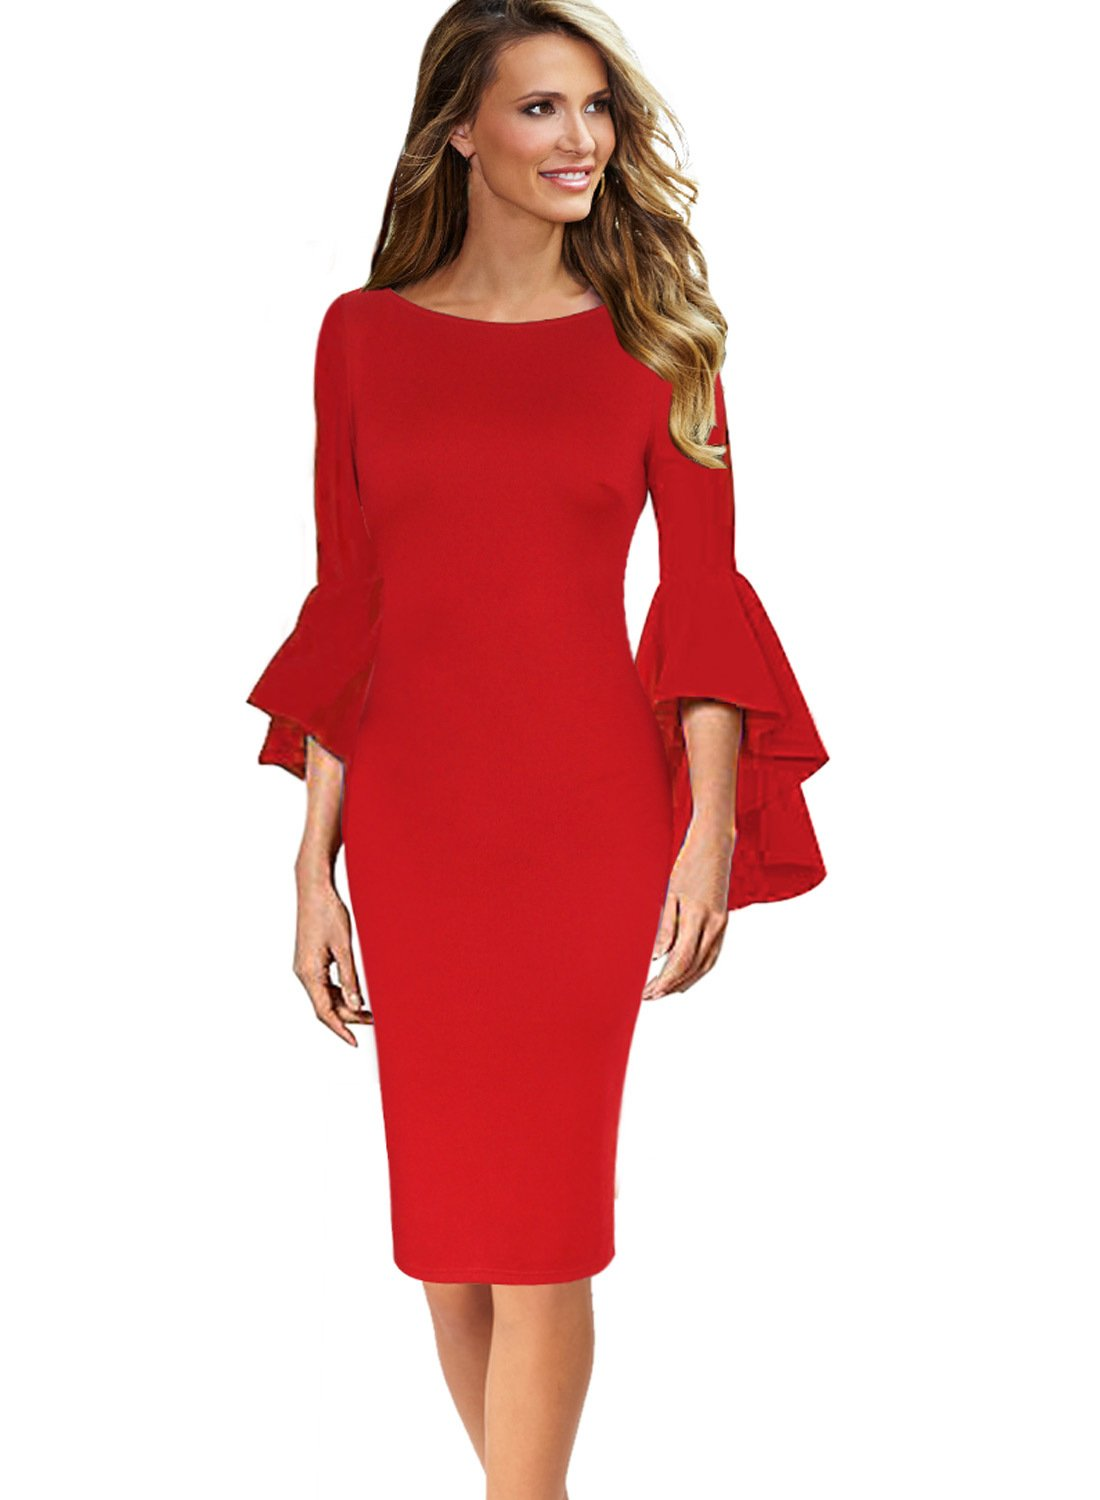 VfEmage Womens Elegant Bell Sleeve Wear to Work Party Cocktail Sheath Dress 8350 RED 12